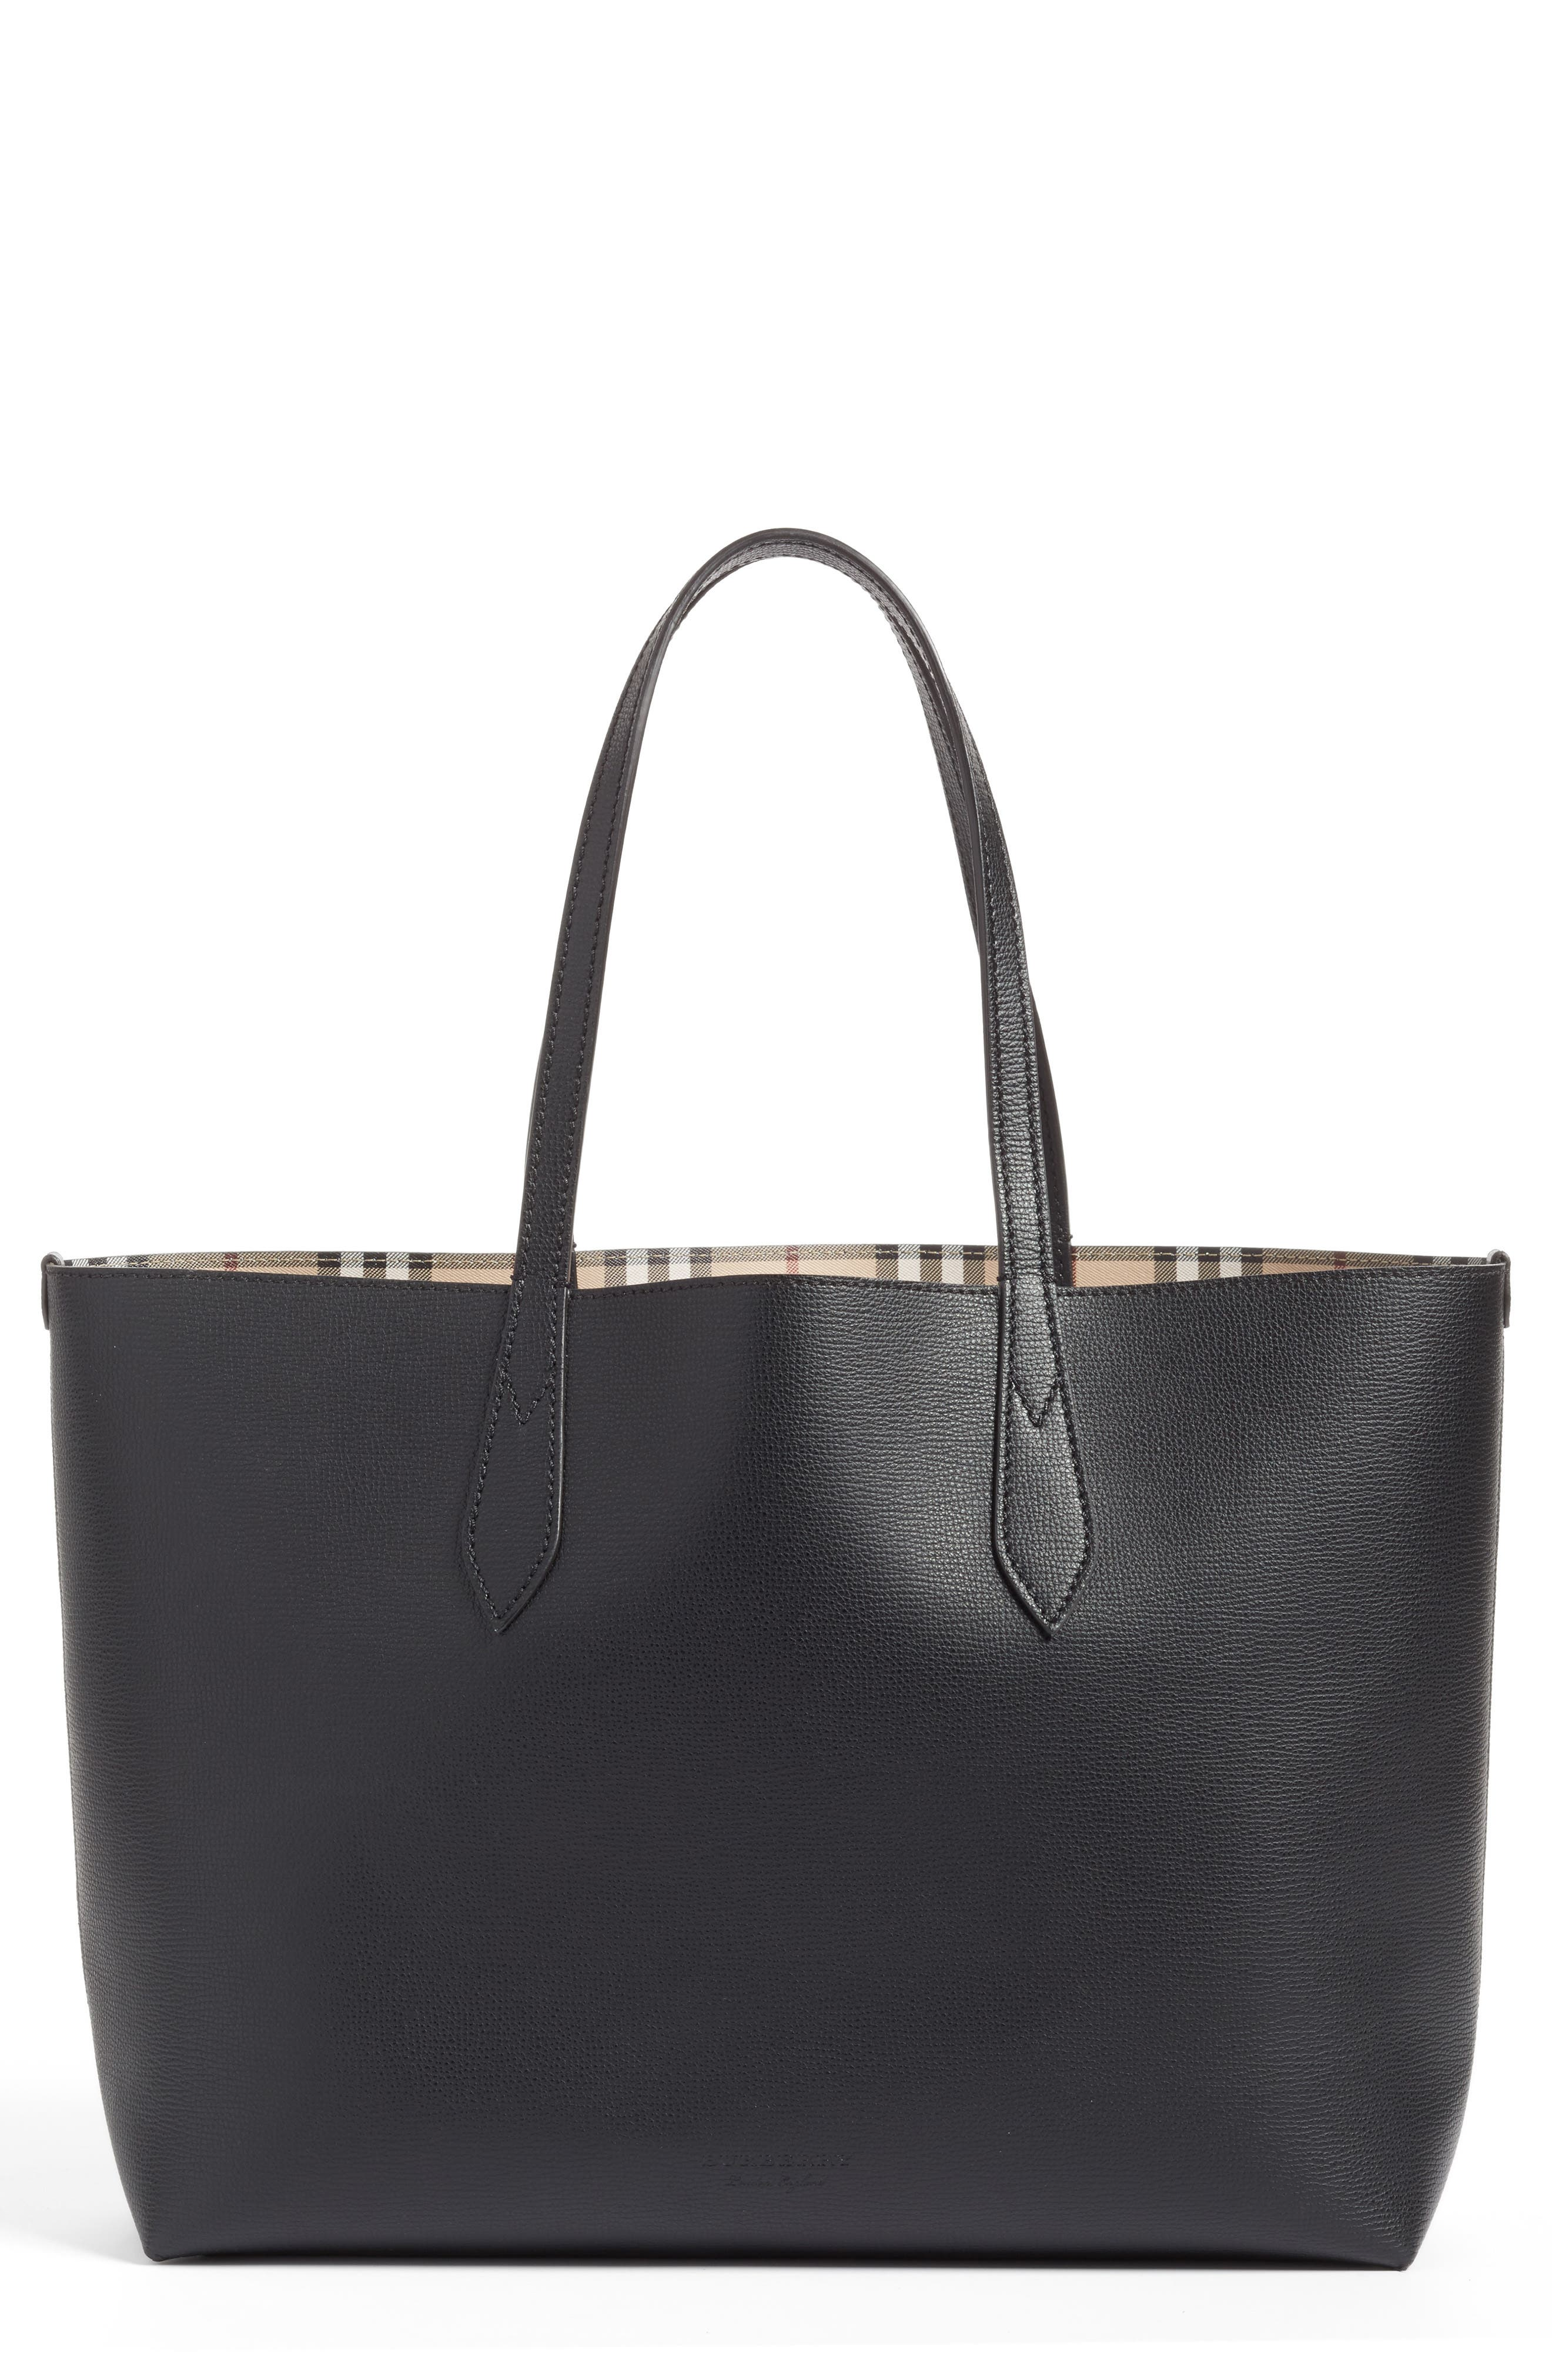 Alternate Image 1 Selected - Burberry Medium Lavenby Reversible Calfskin Leather Tote